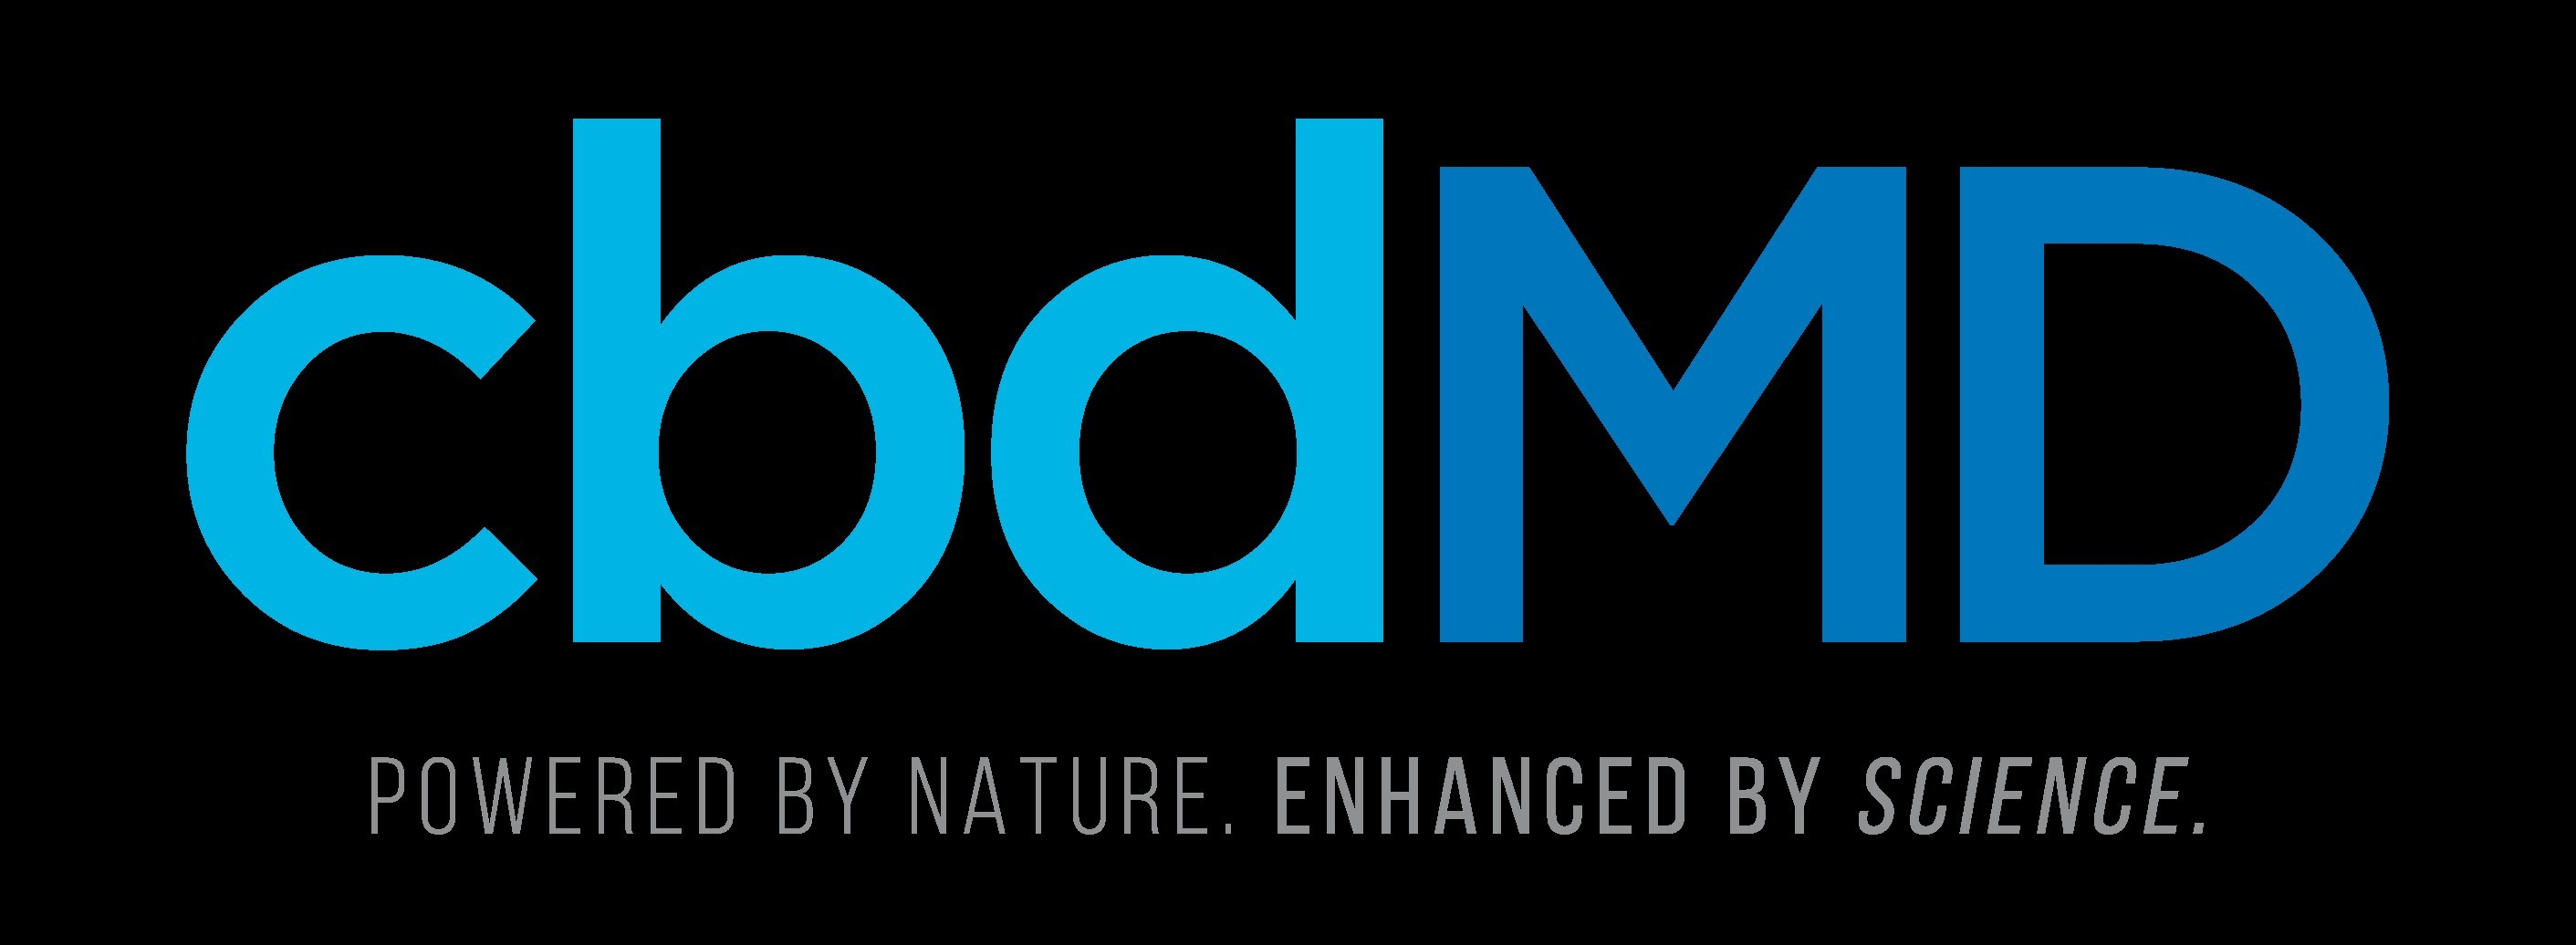 In Conjunction with Daylight Savings, cbdMD Launches Highly Anticipated CBD  Sleep Aid   Business Wire